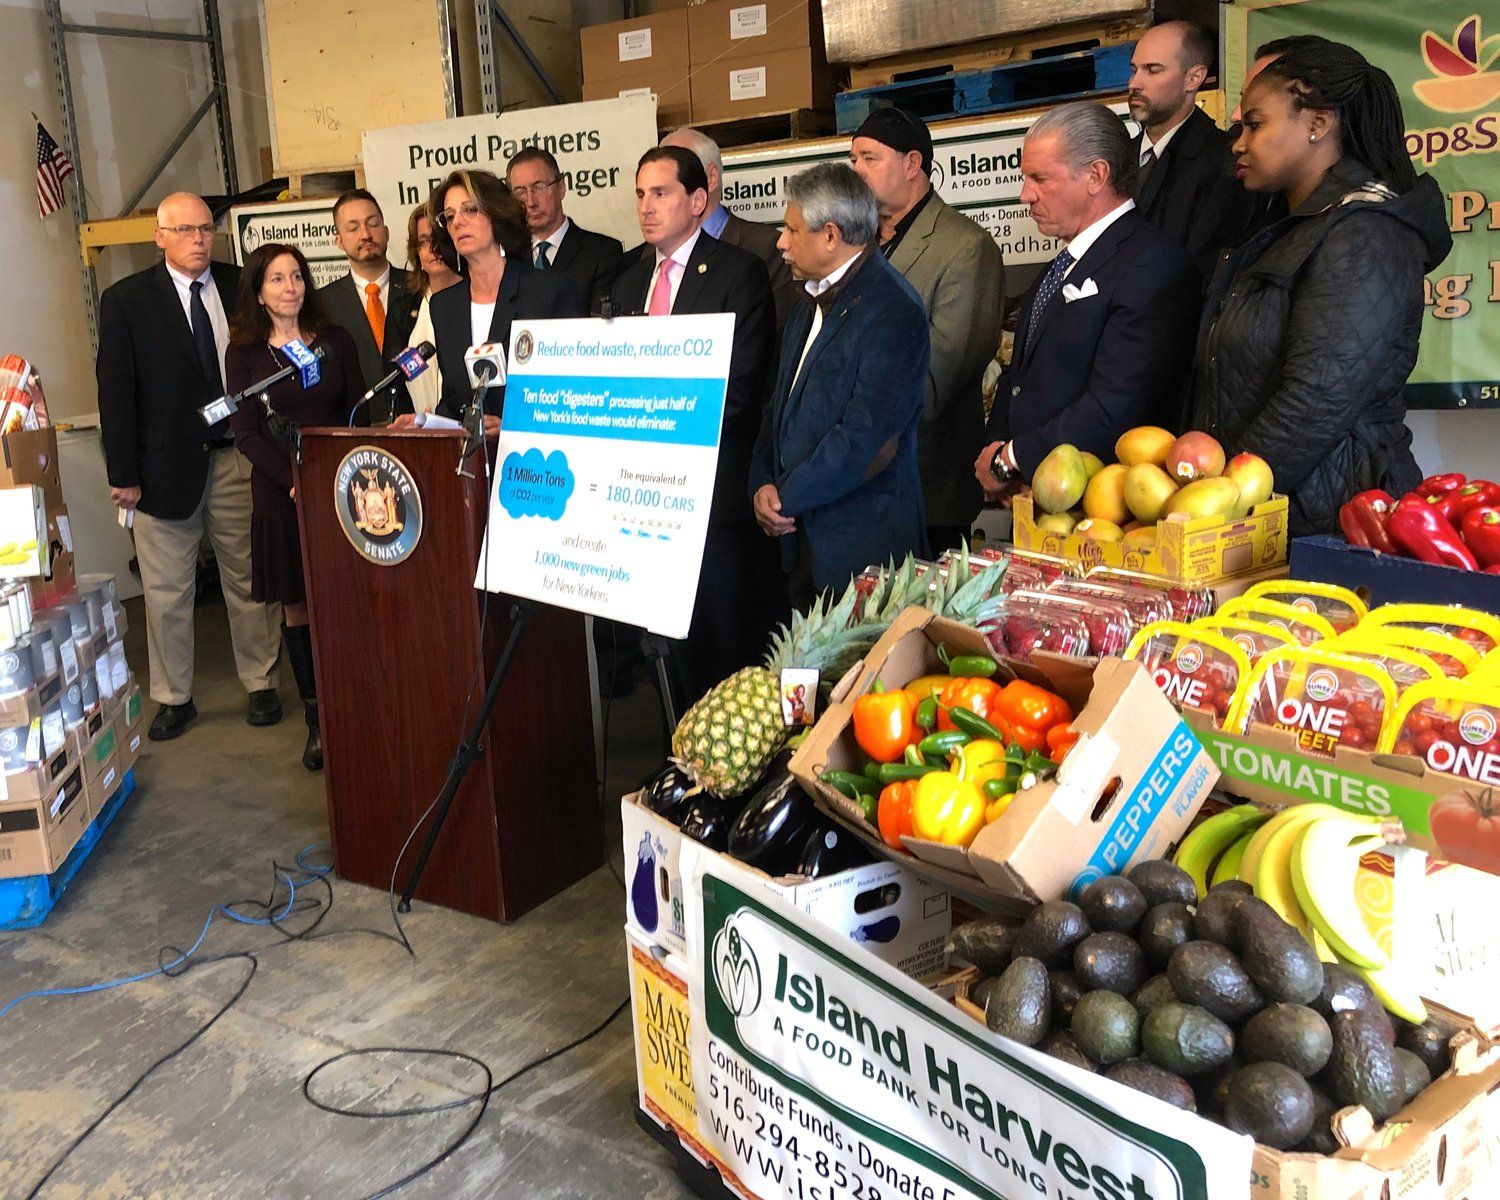 Island Harvest President Randi Shubin Dresner, at lectern, with State Sen. Todd Kaminsky to her right, was among the officials last Thursday to announce passage of a measure to reduce food in the waste stream by requiring large retailers to send unsellable but edible food to recovery organizations like Island Harvest.